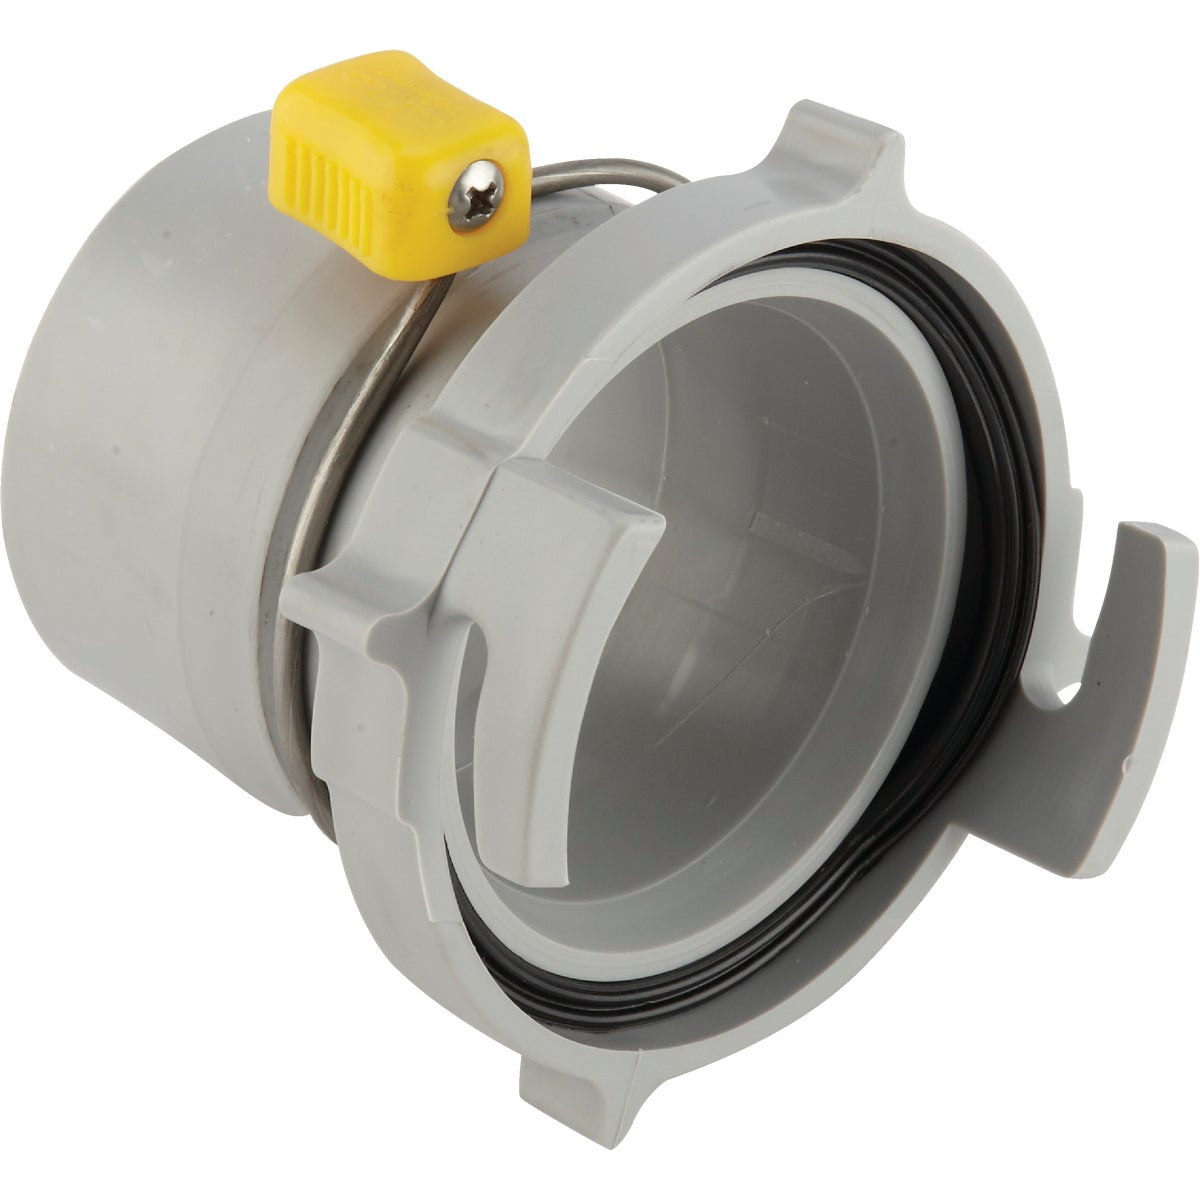 RV STRAIGHT HOSE ADAPTER - 39173 by Camco Mfg.